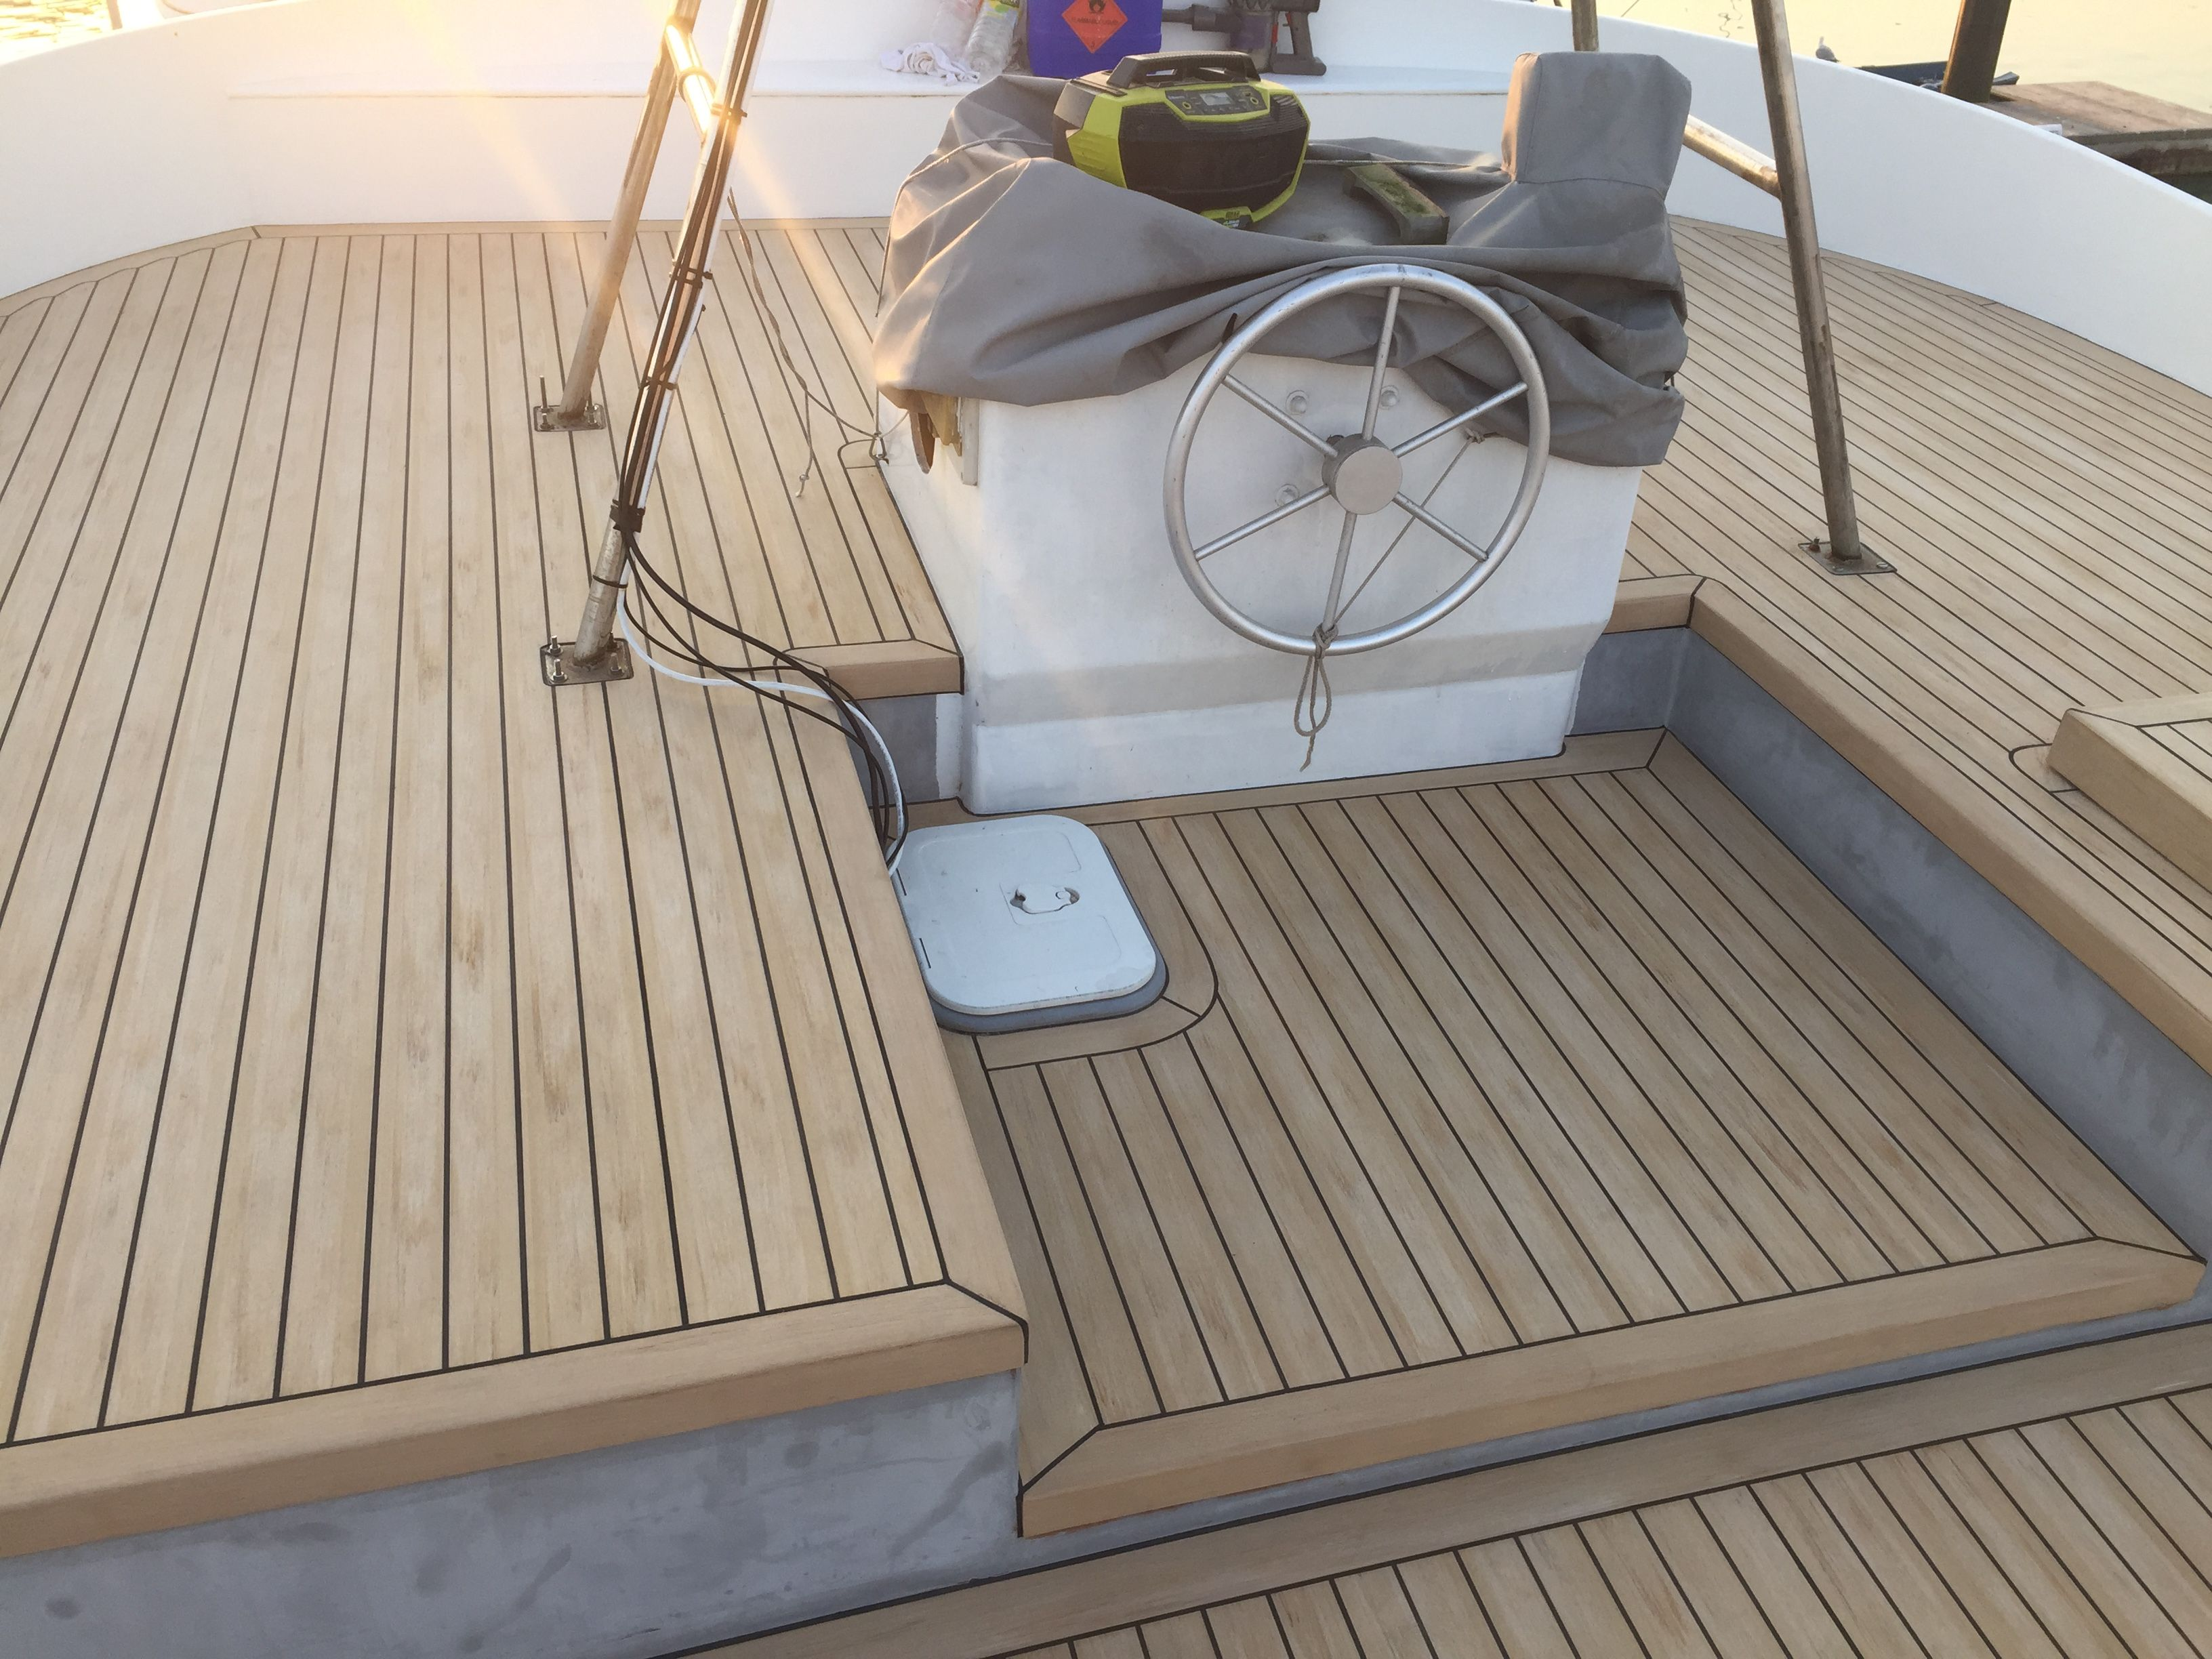 Boat Floor Board Replacement Material Best Flooring For Boats